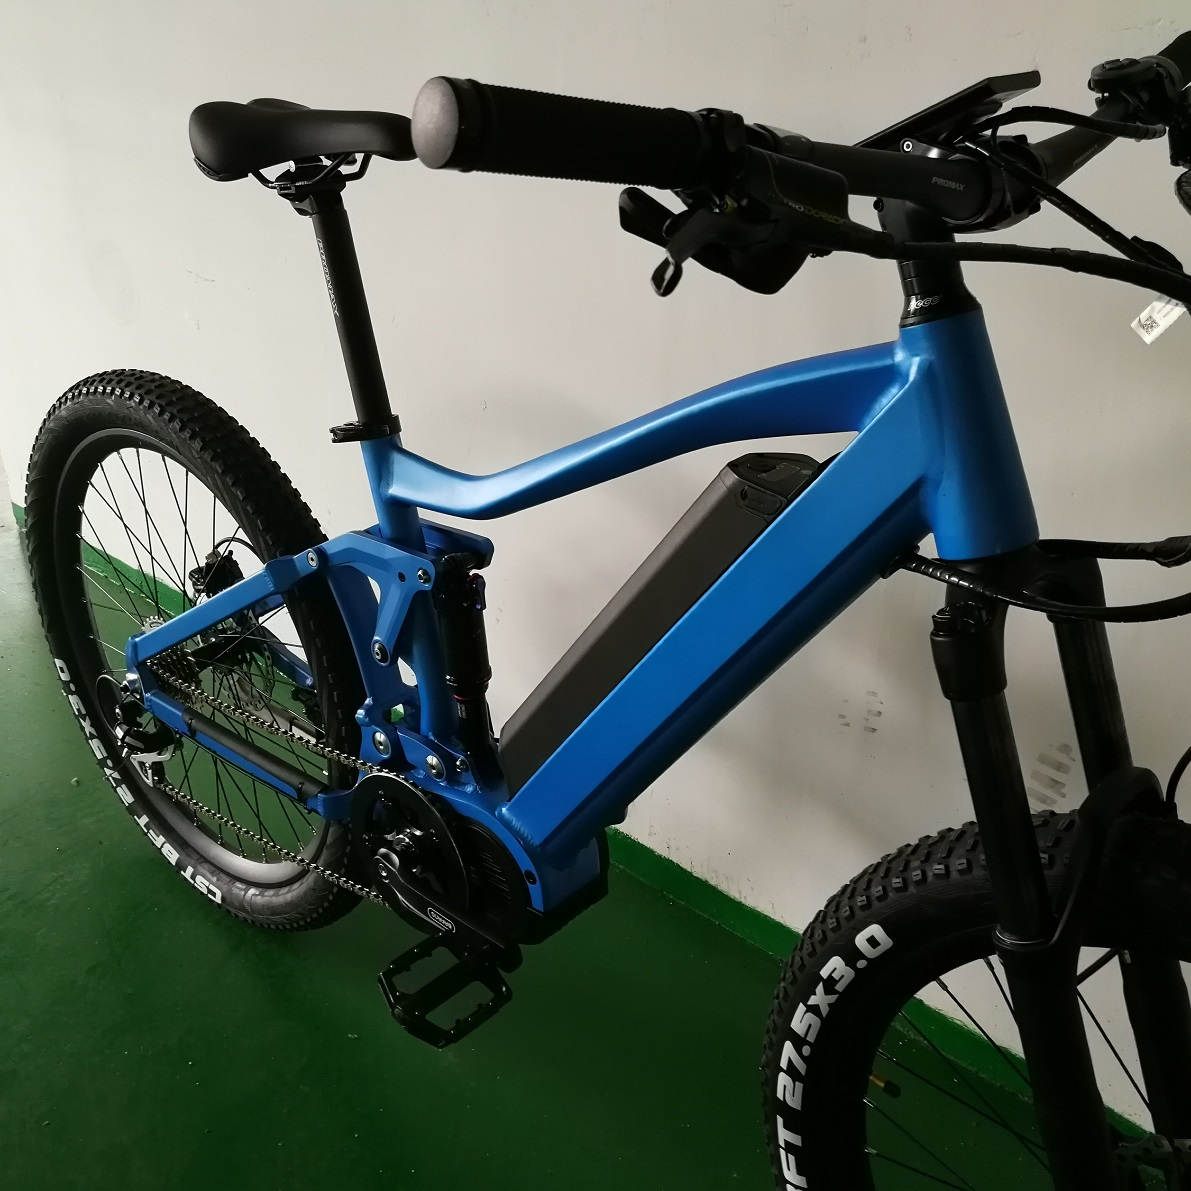 Top quality mountain ebikes with Bafang mid motor from FREY